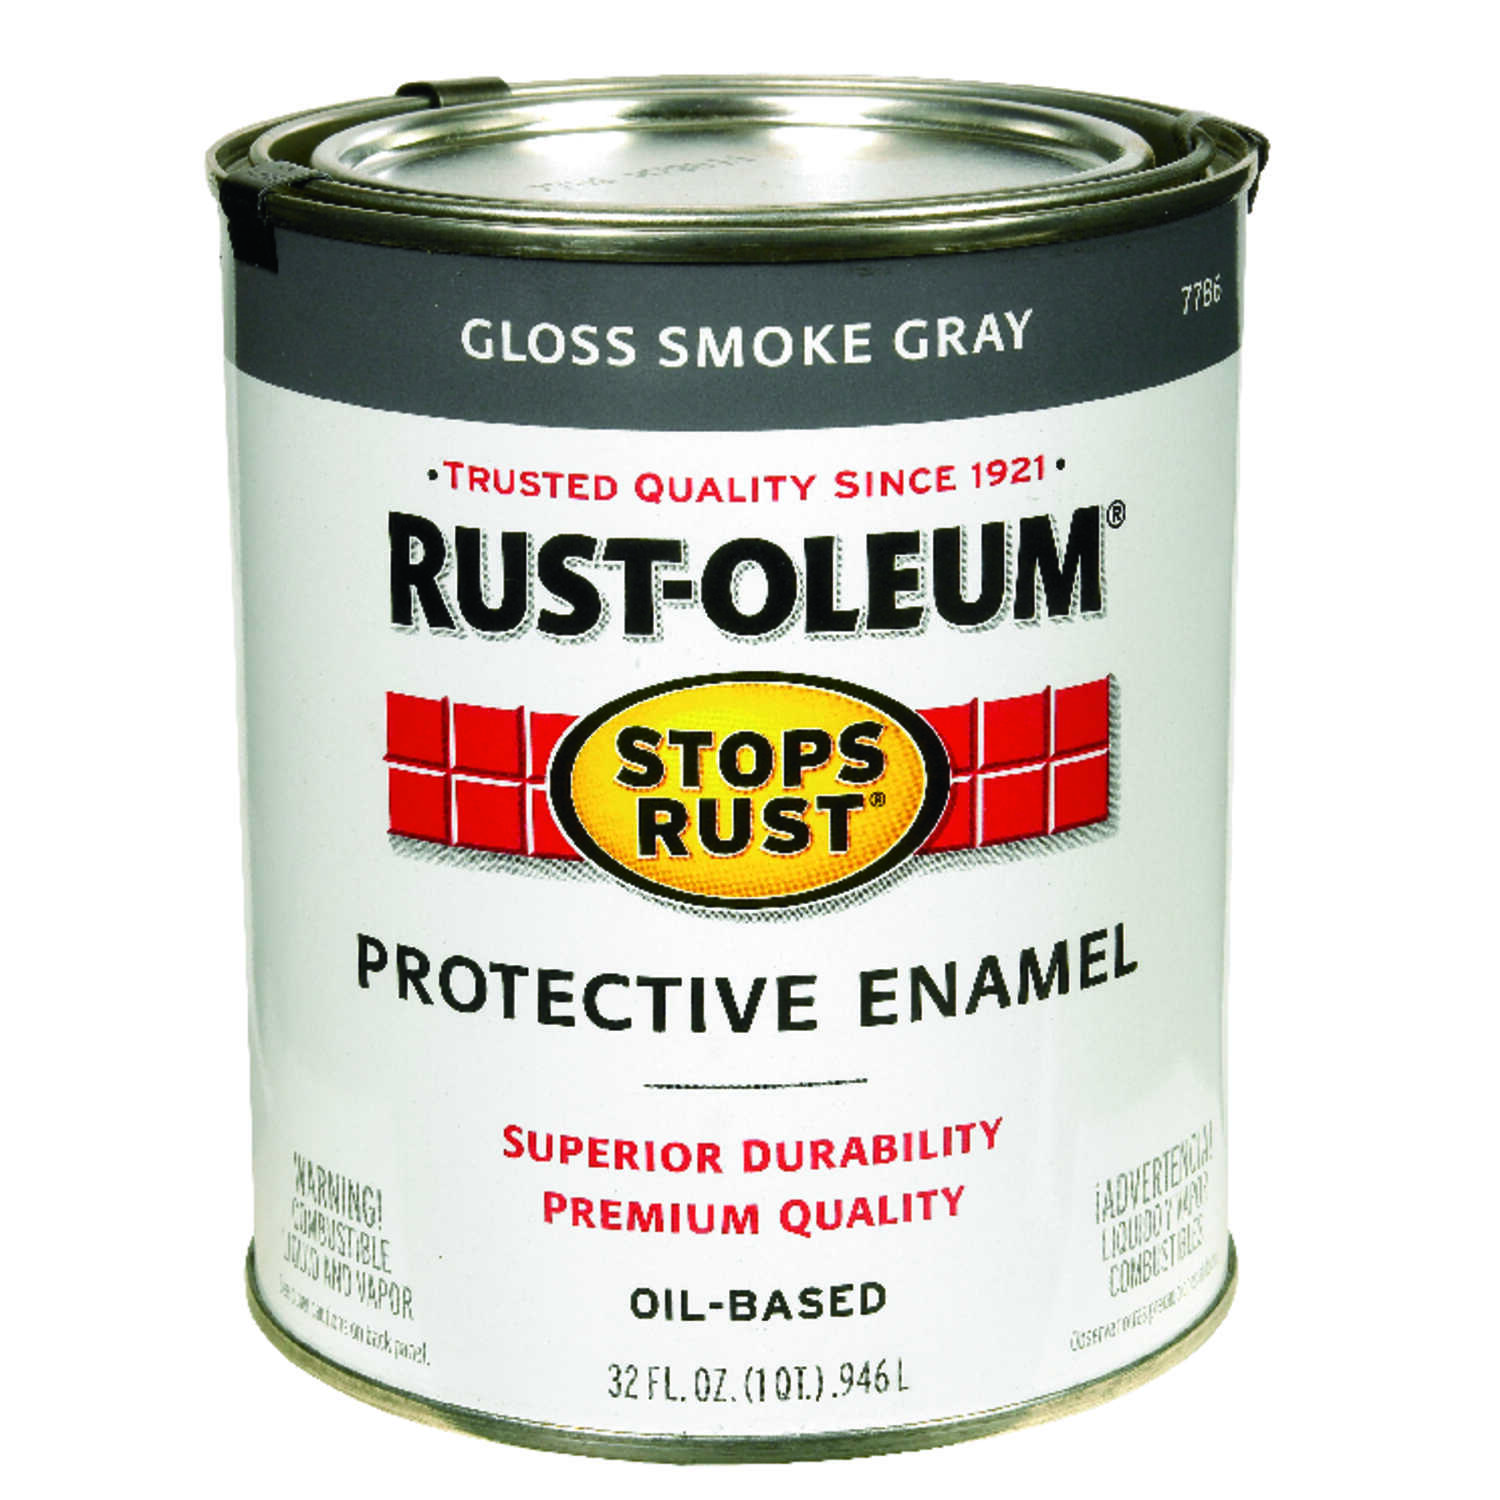 Rust-Oleum  Gloss  Smoke Gray  Indoor and Outdoor  Protective Enamel  1 qt.